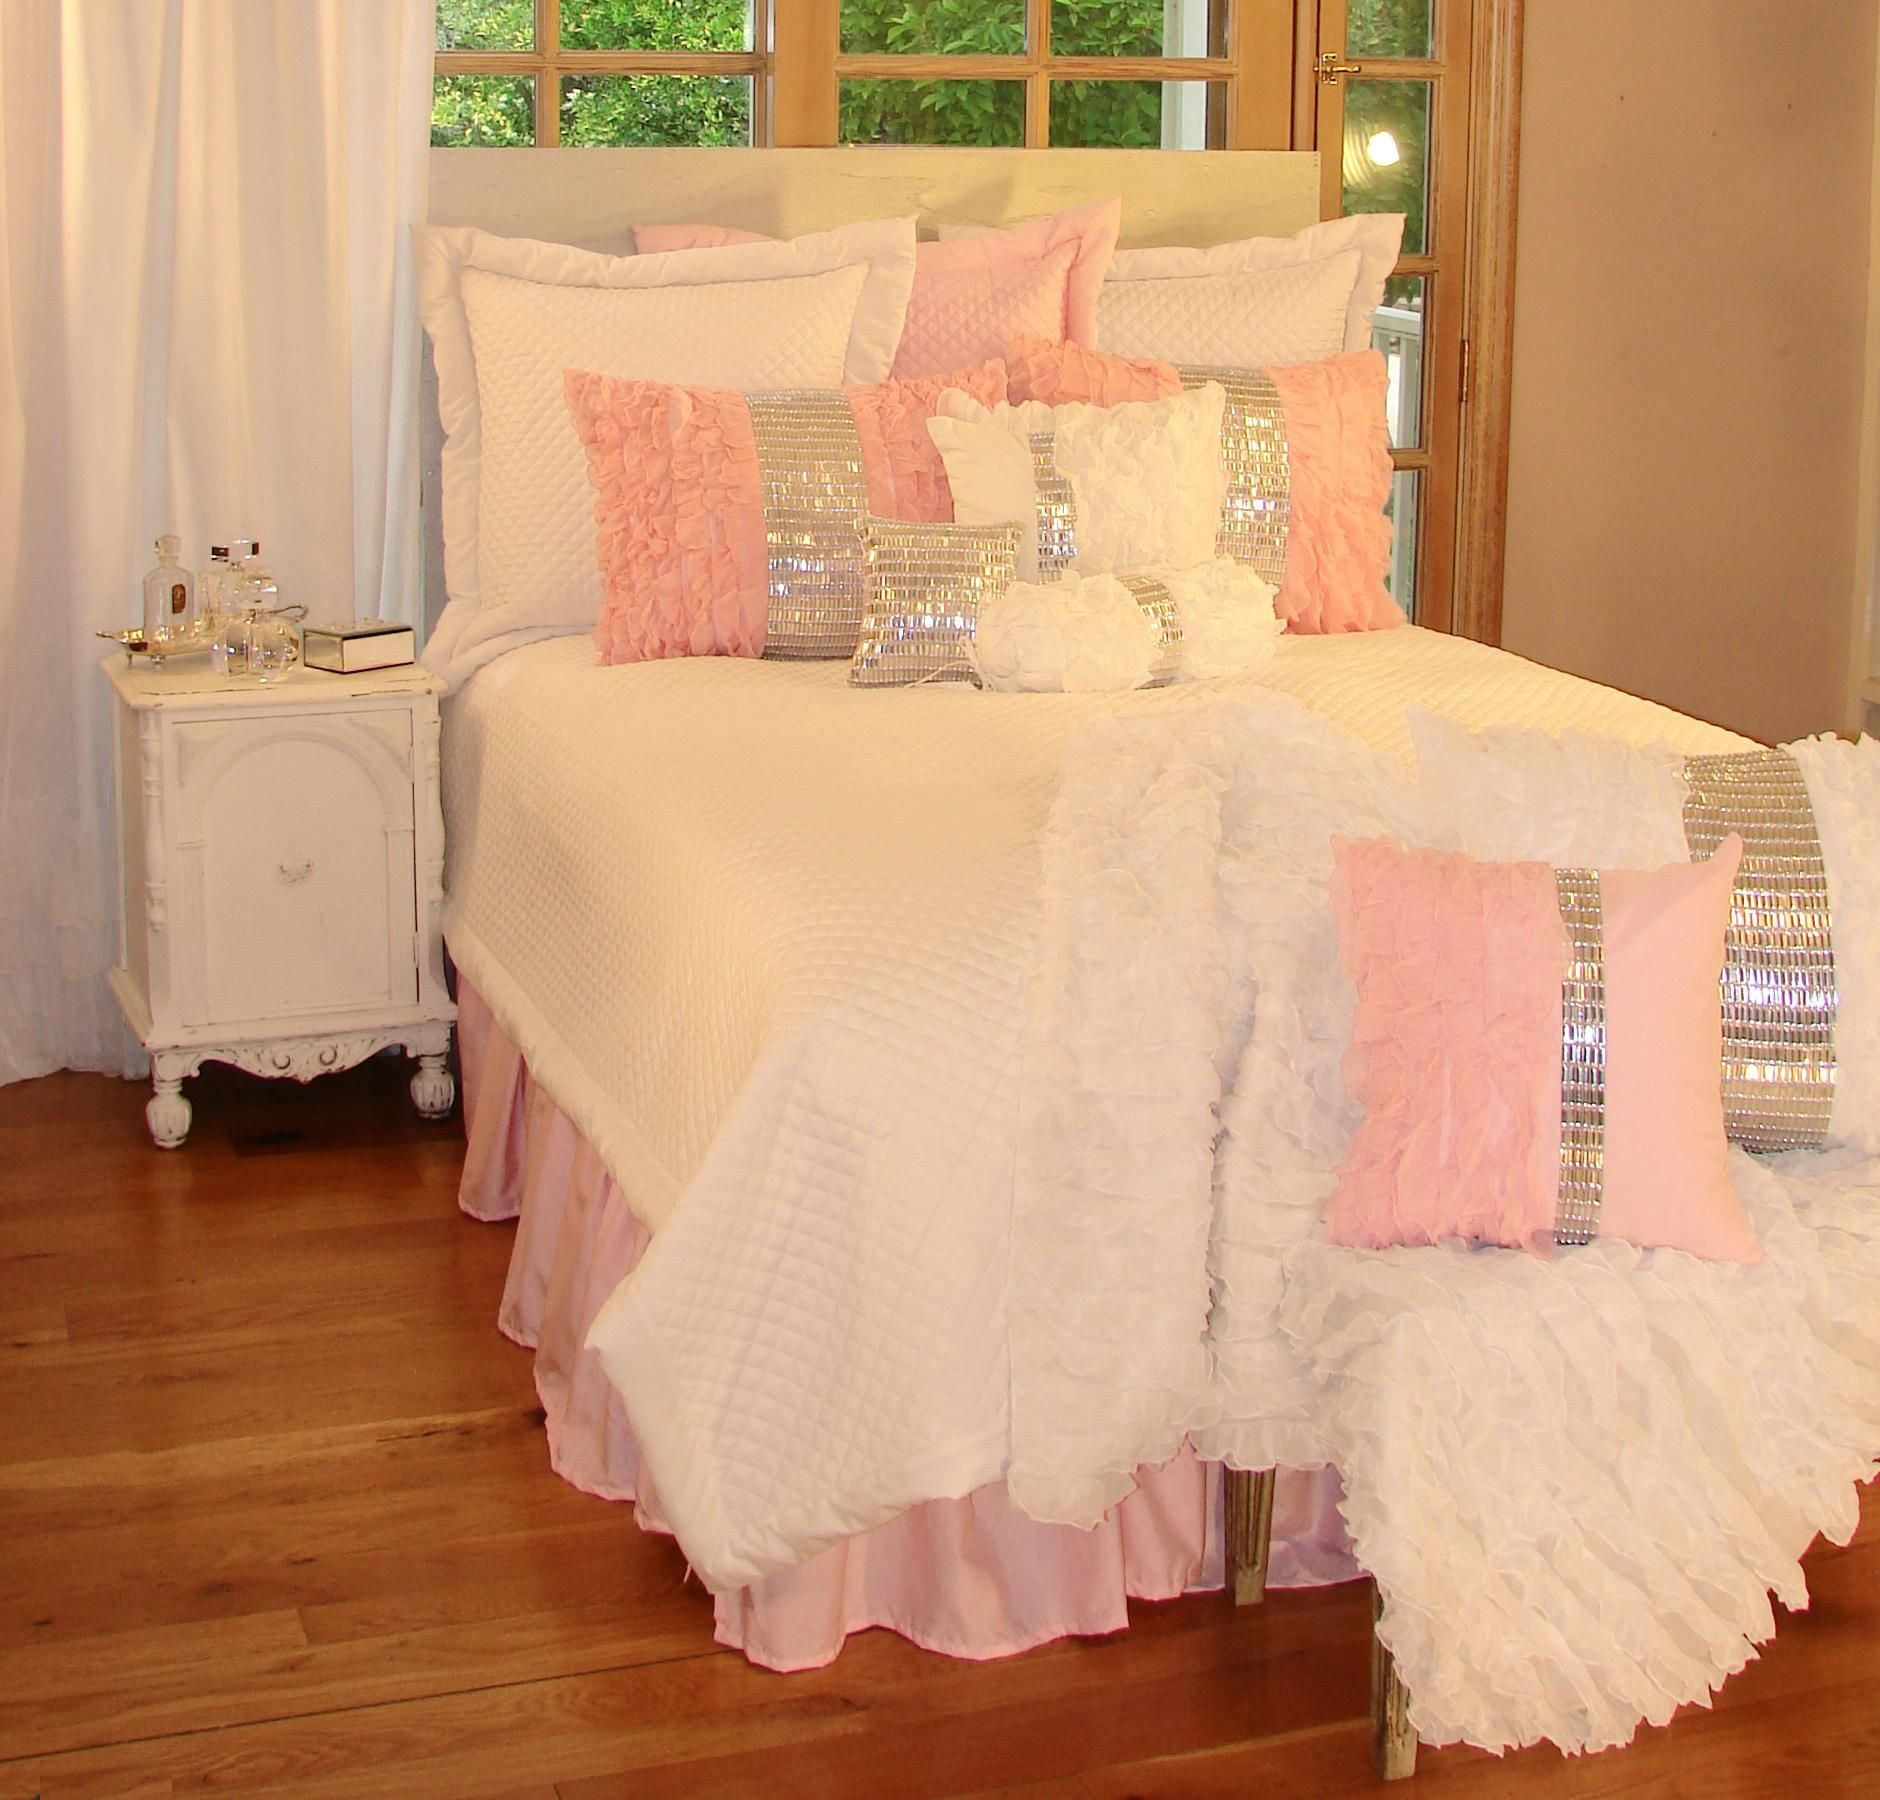 12 Perfect And Calming Bedroom Ideas For Women: Glitz And Glamour Pink Bedding